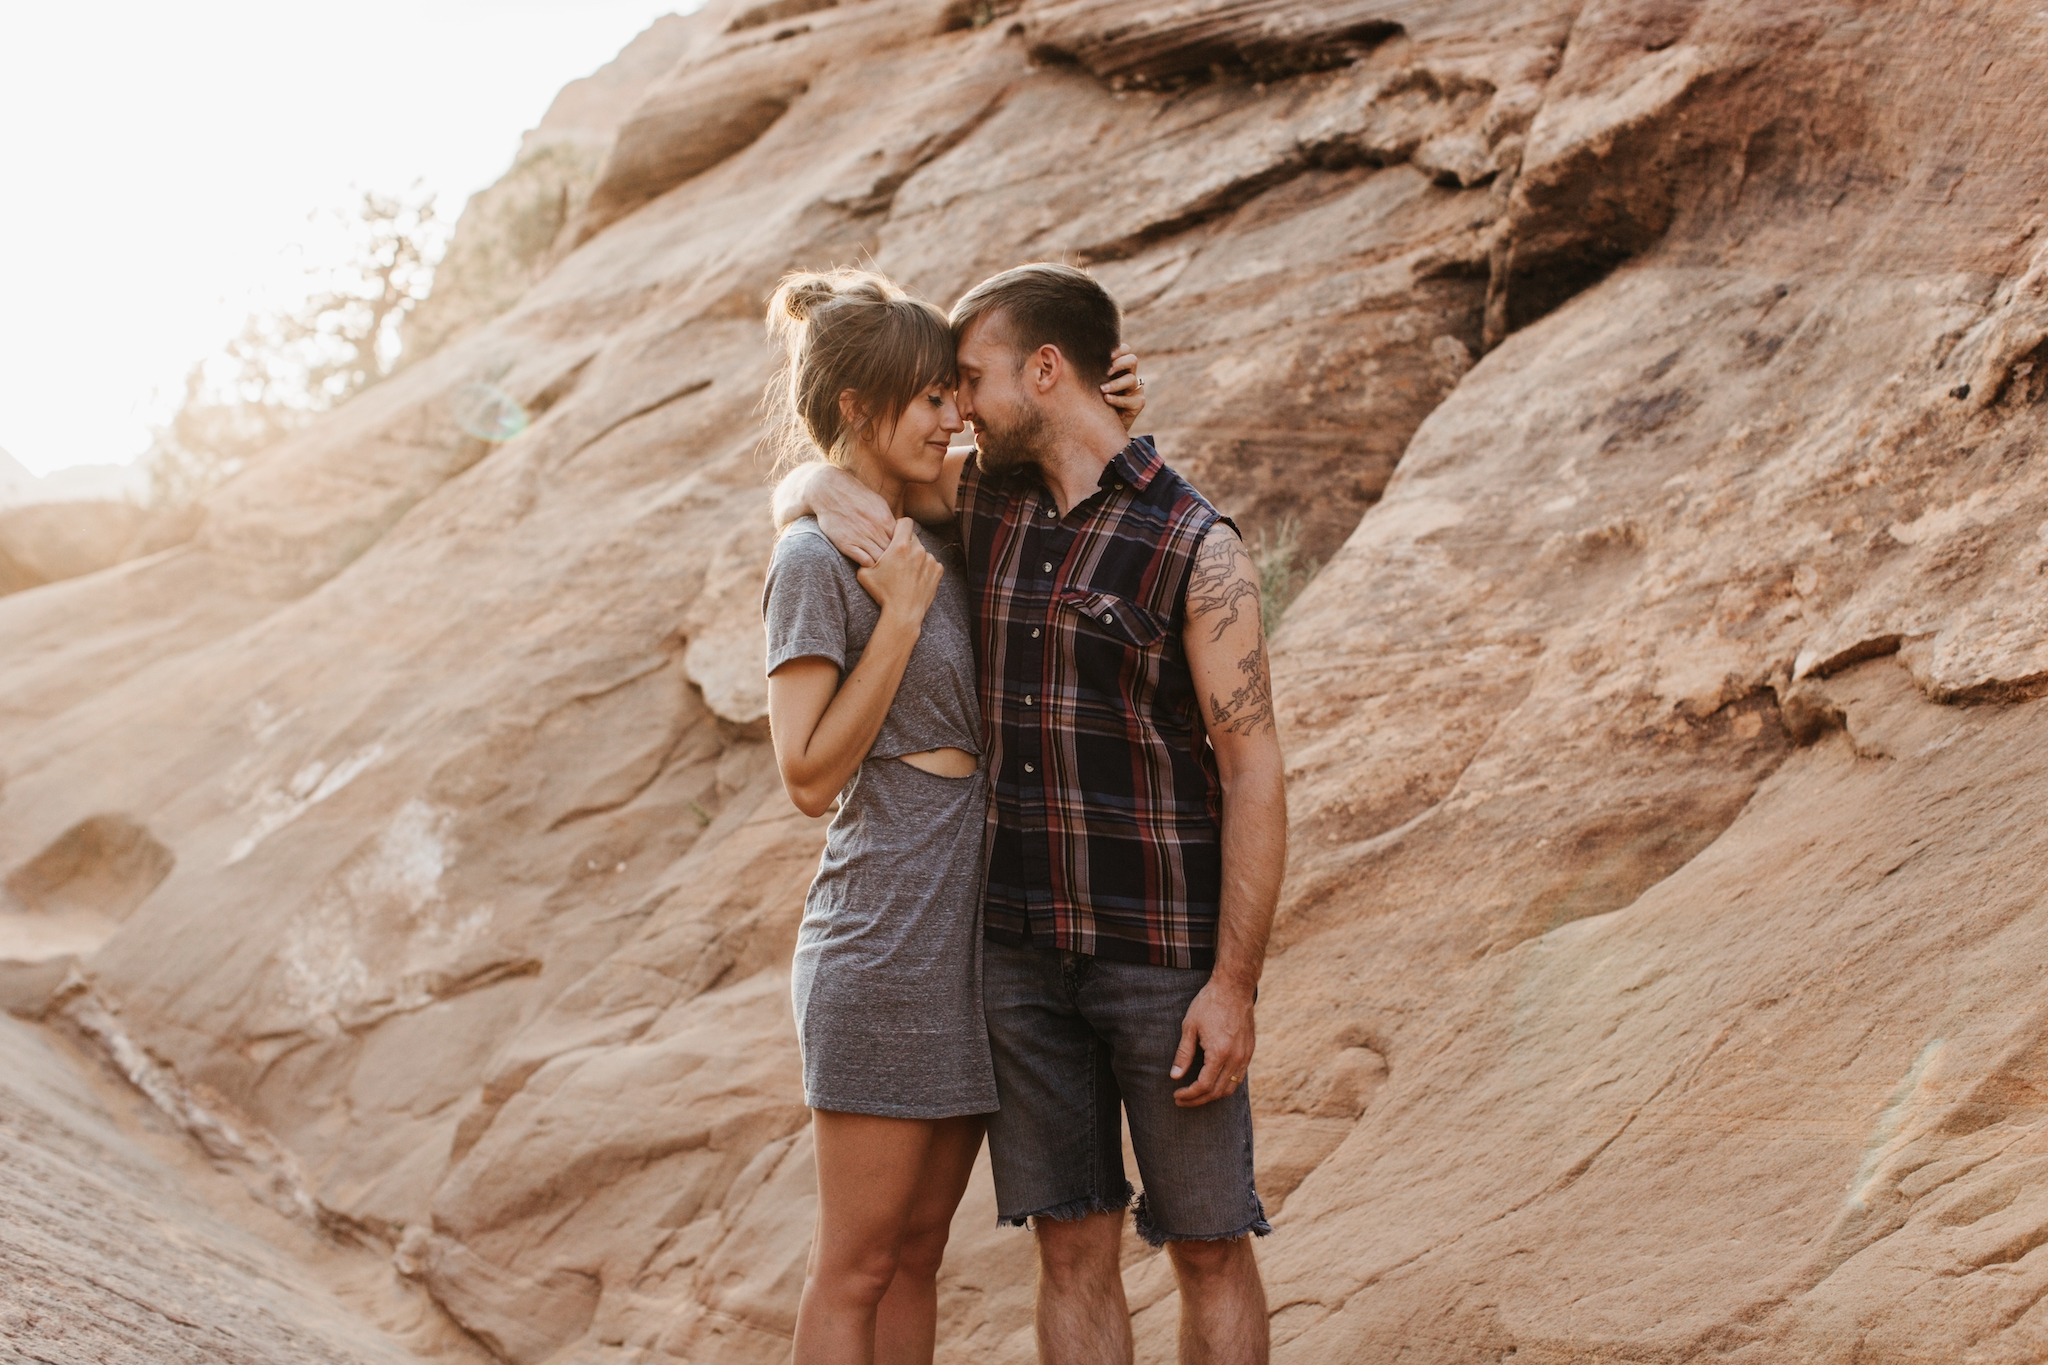 zion - engagement - photography 064.jpg